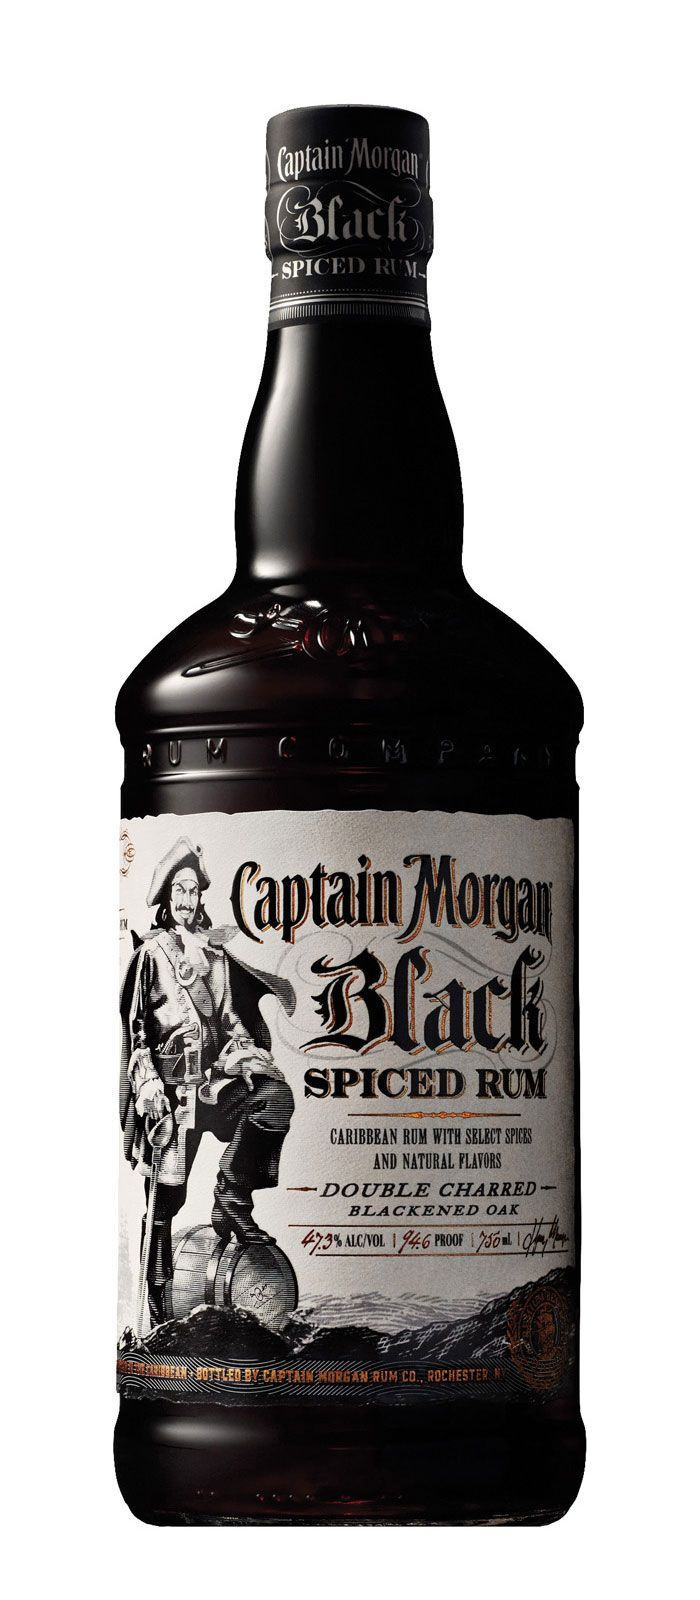 Captain Morgan Black Spiced Rum -  OOh..may havbe to try this to see if it rivals KRAKEN!